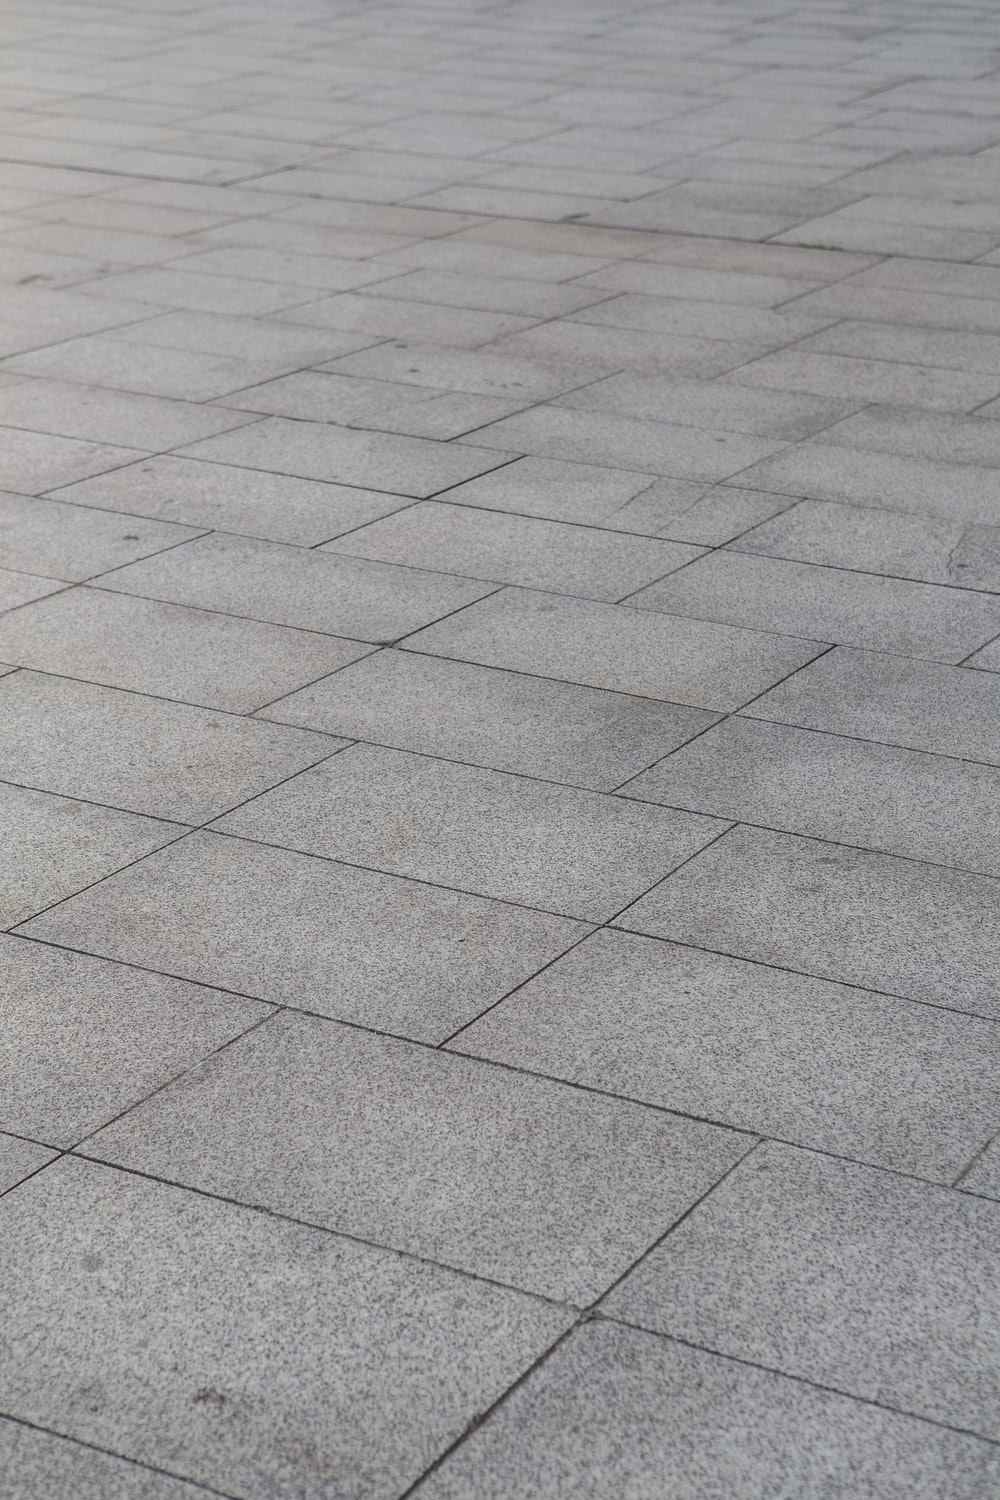 photo of gray floor tiles